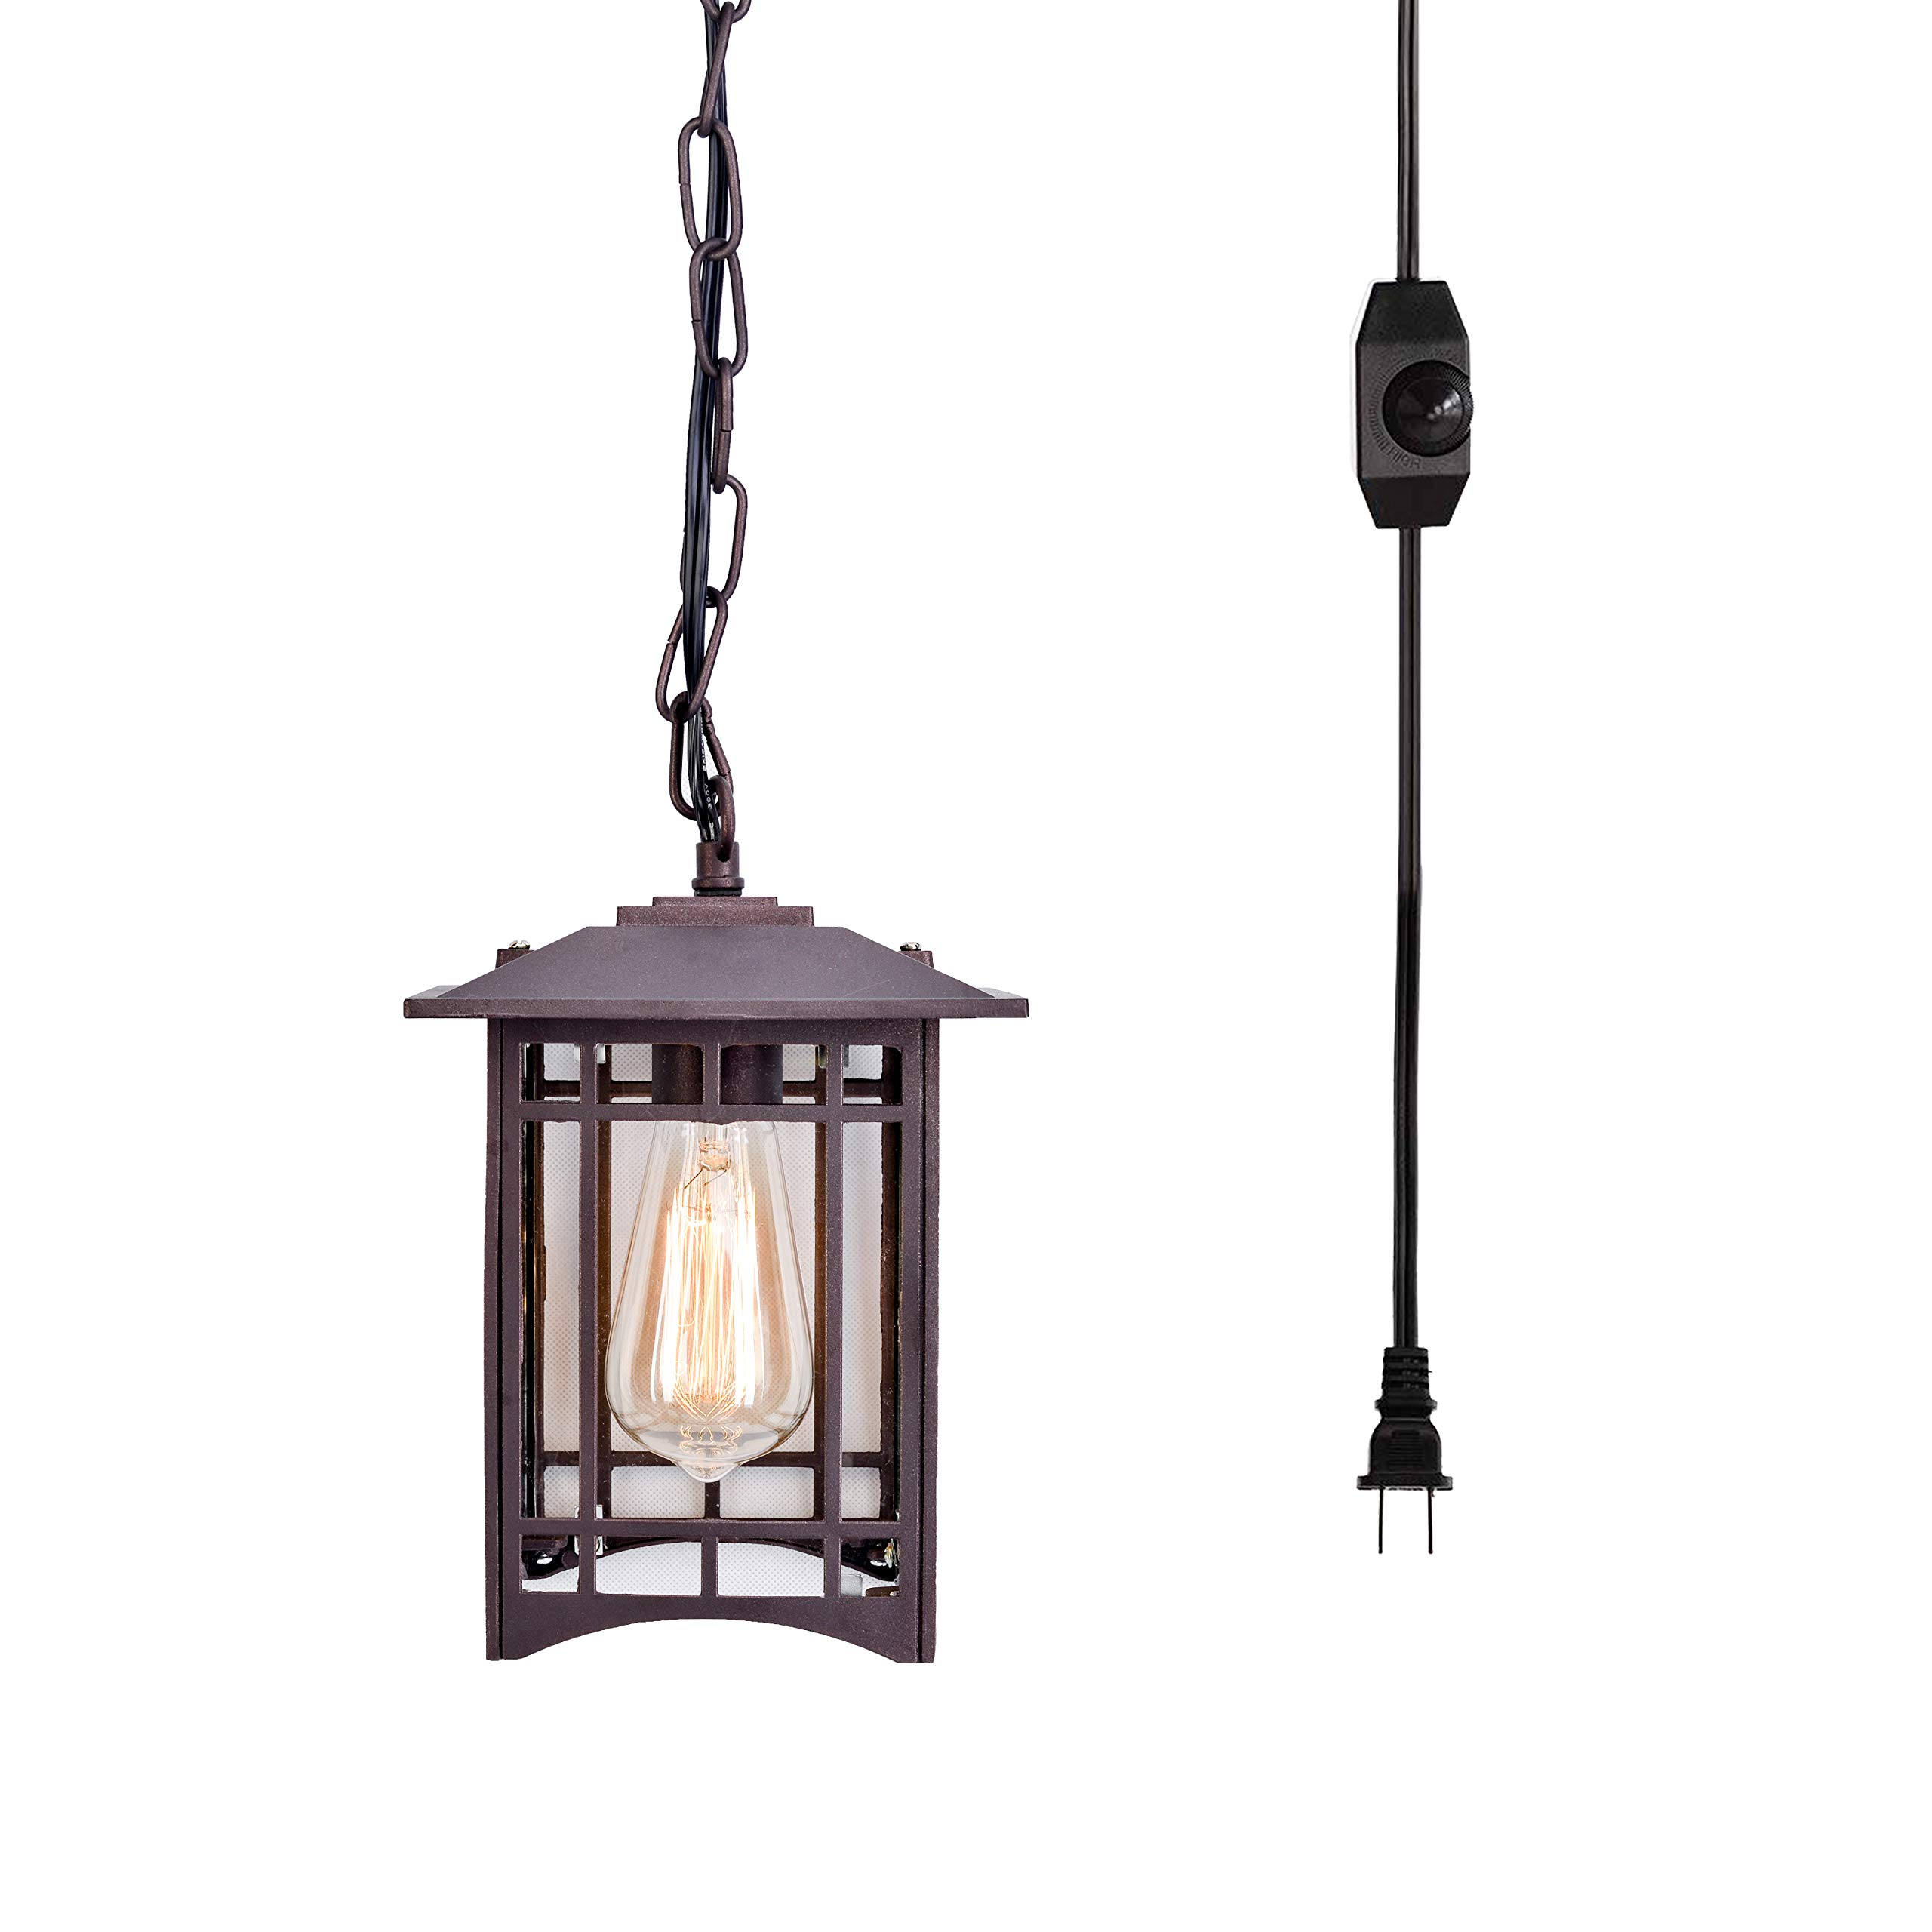 Stepeak Industrial Plug in Pendant Hanging Light with 16.4' Cord Dimmer On/Off Switch, Rustic Vintage Lantern Lamp for Porch Farmhouse Patio Garage by Stepeak